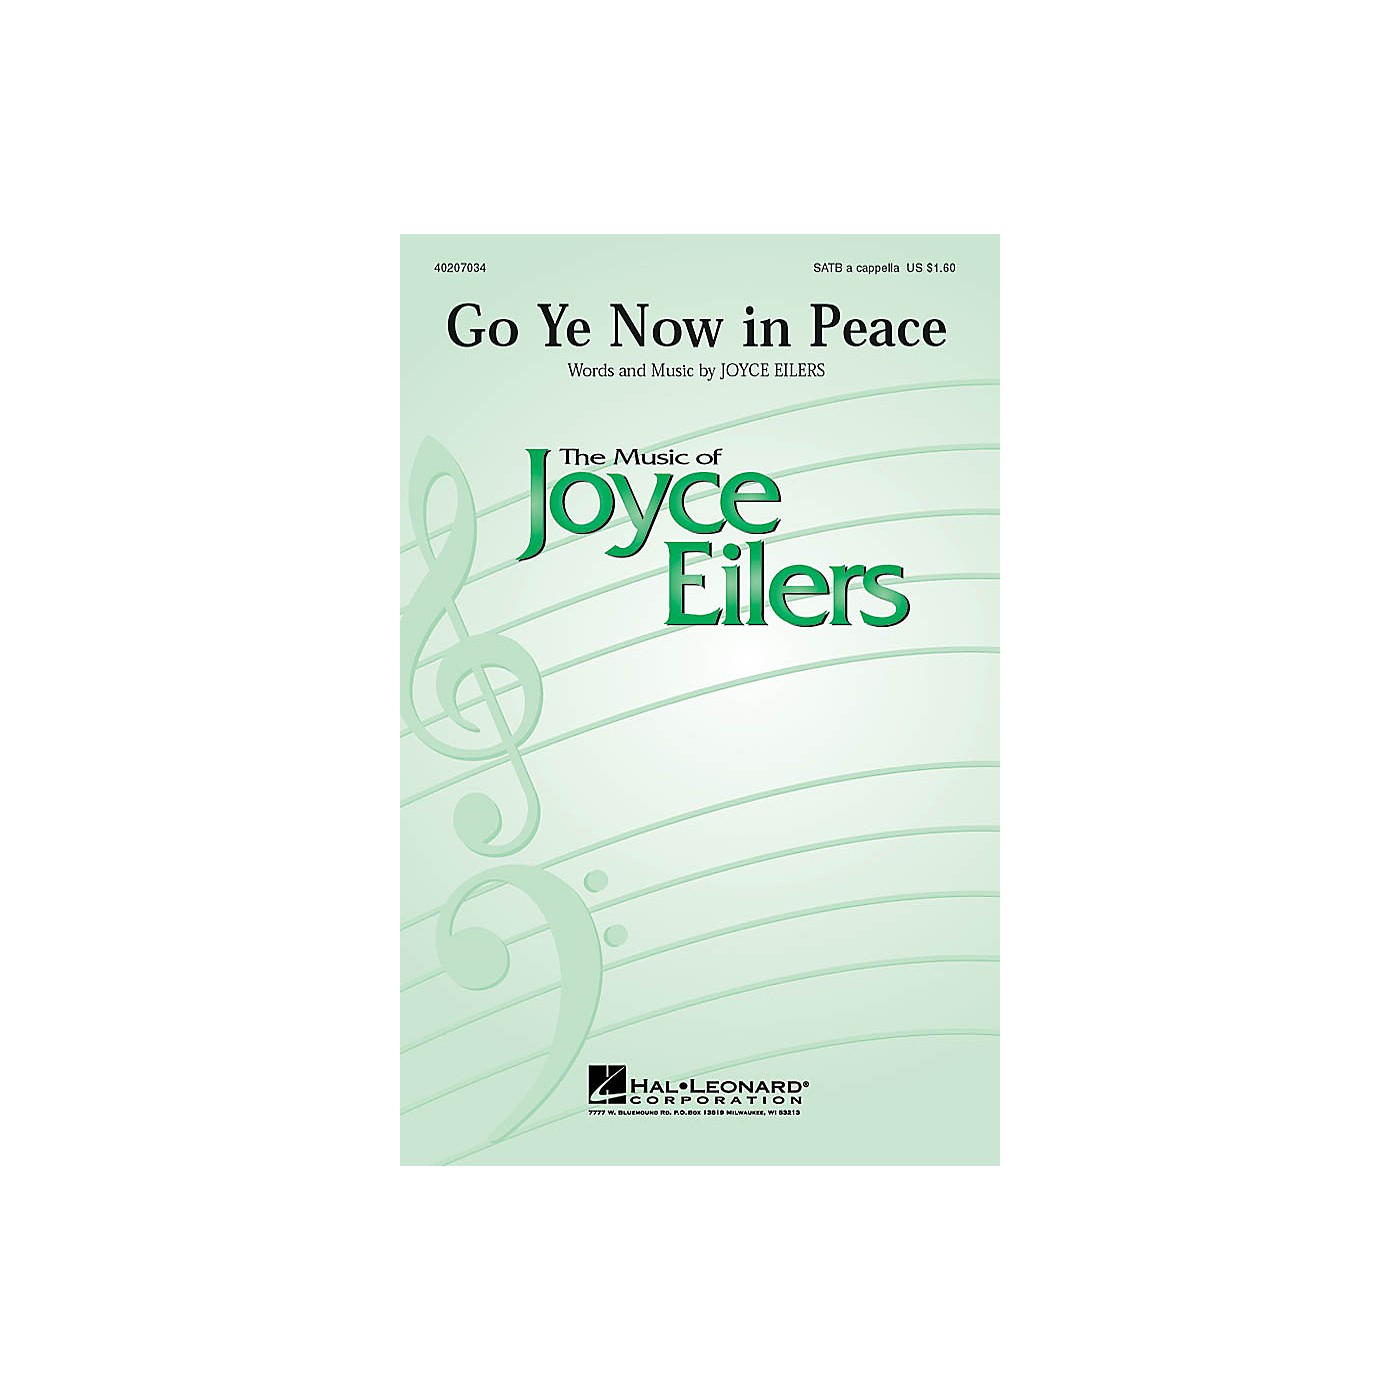 Hal Leonard Go Ye Now in Peace SATB a cappella composed by Joyce Eilers thumbnail